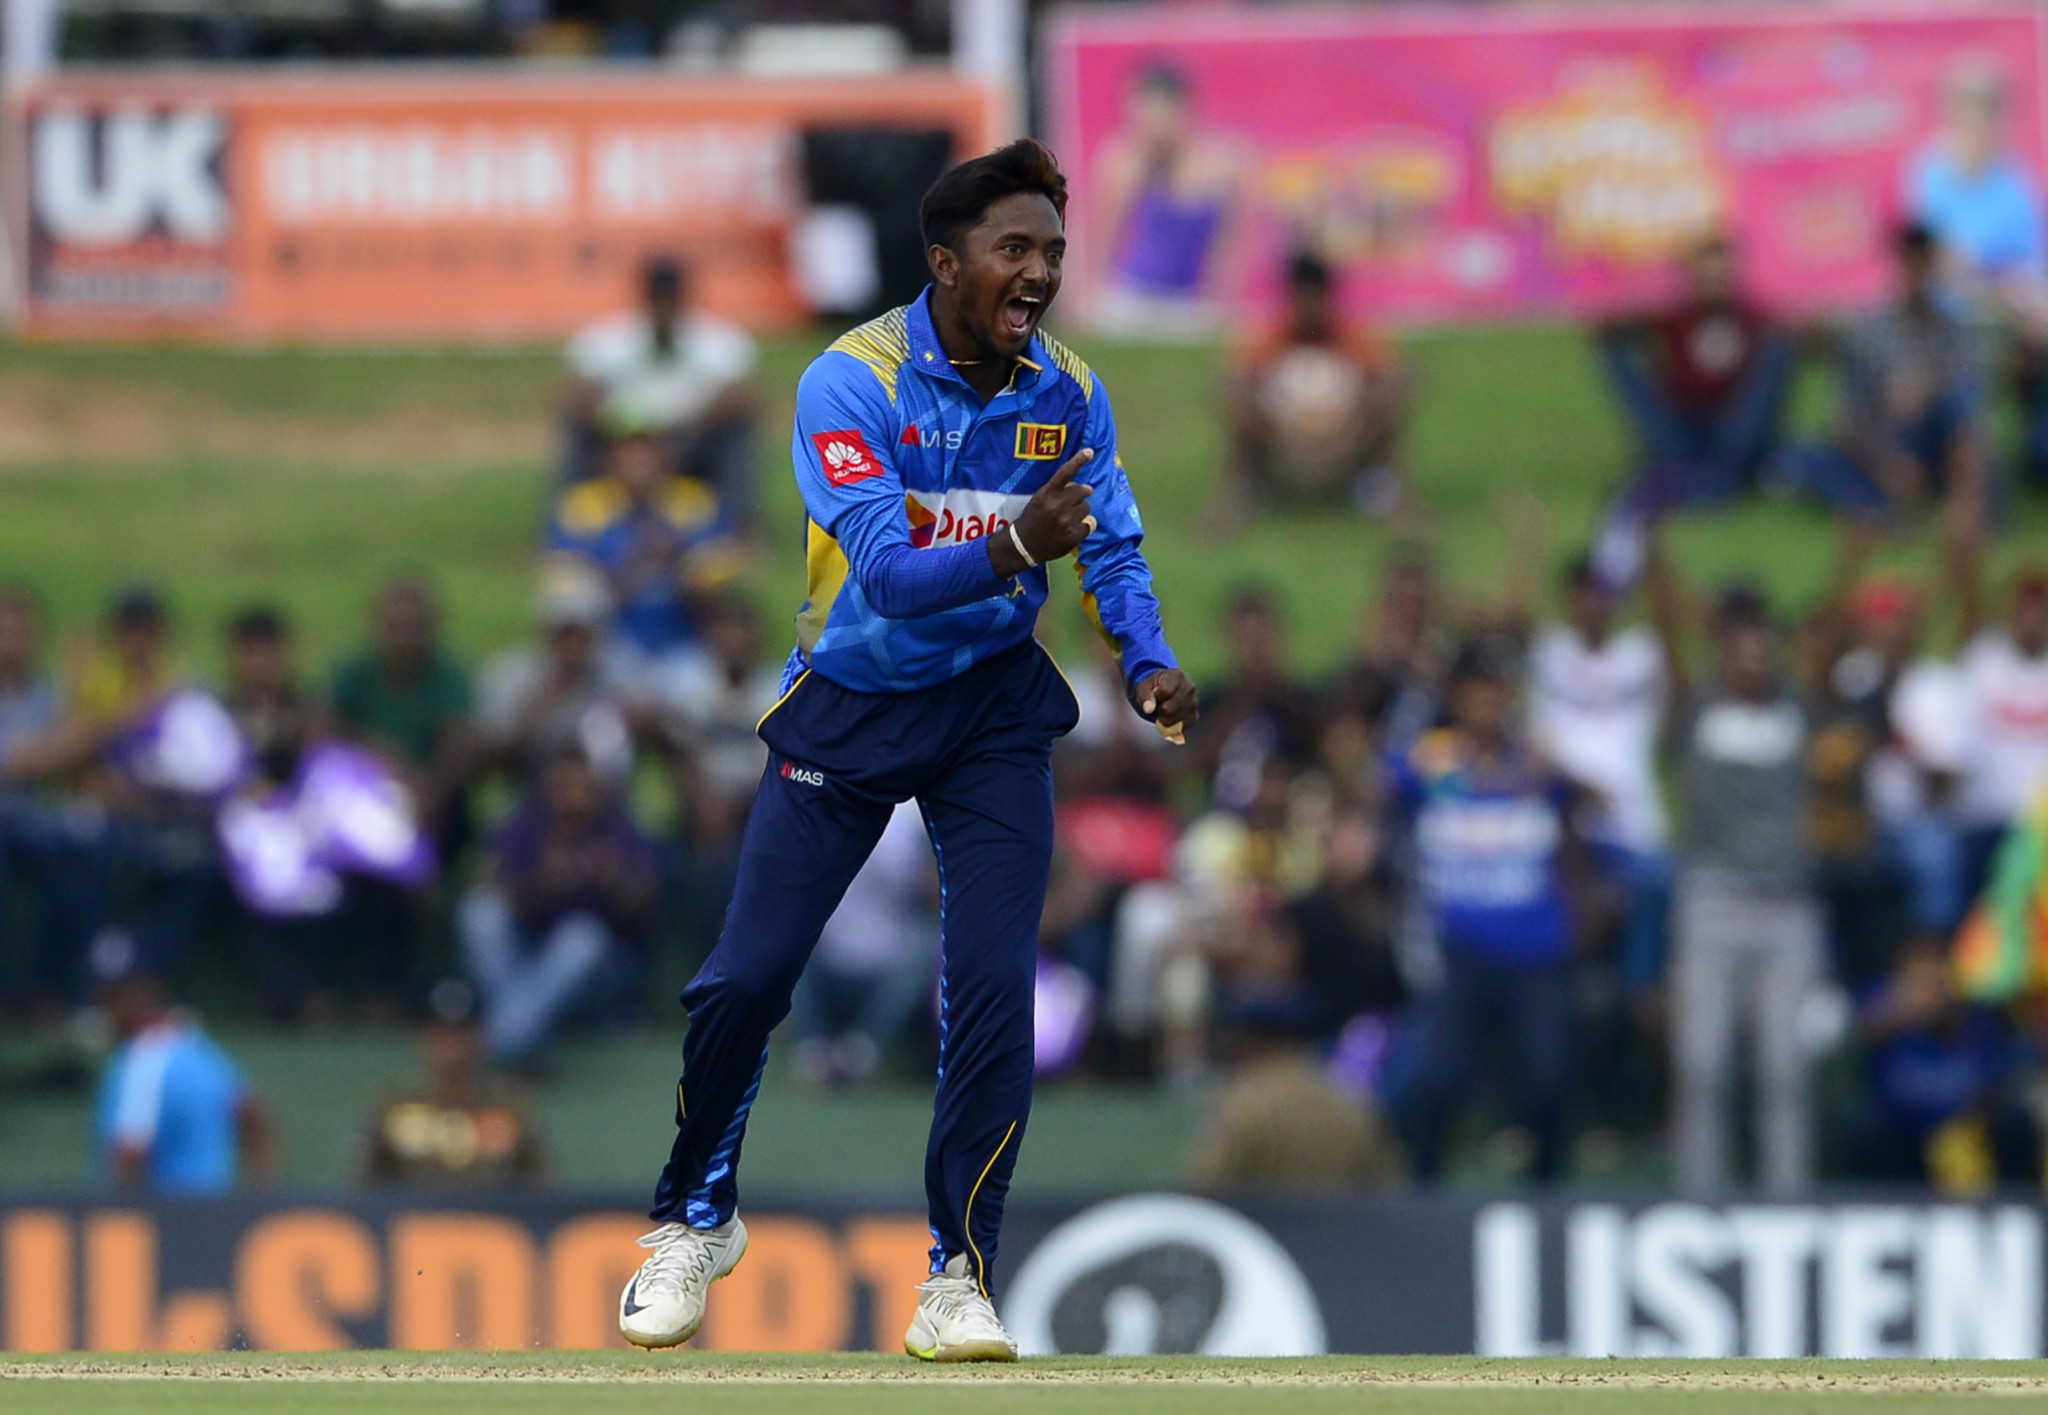 Match-fixing in Sri Lanka could become a criminal offence, as the International Cricket Council lobbies the Government to introduce legislation ©Getty Images